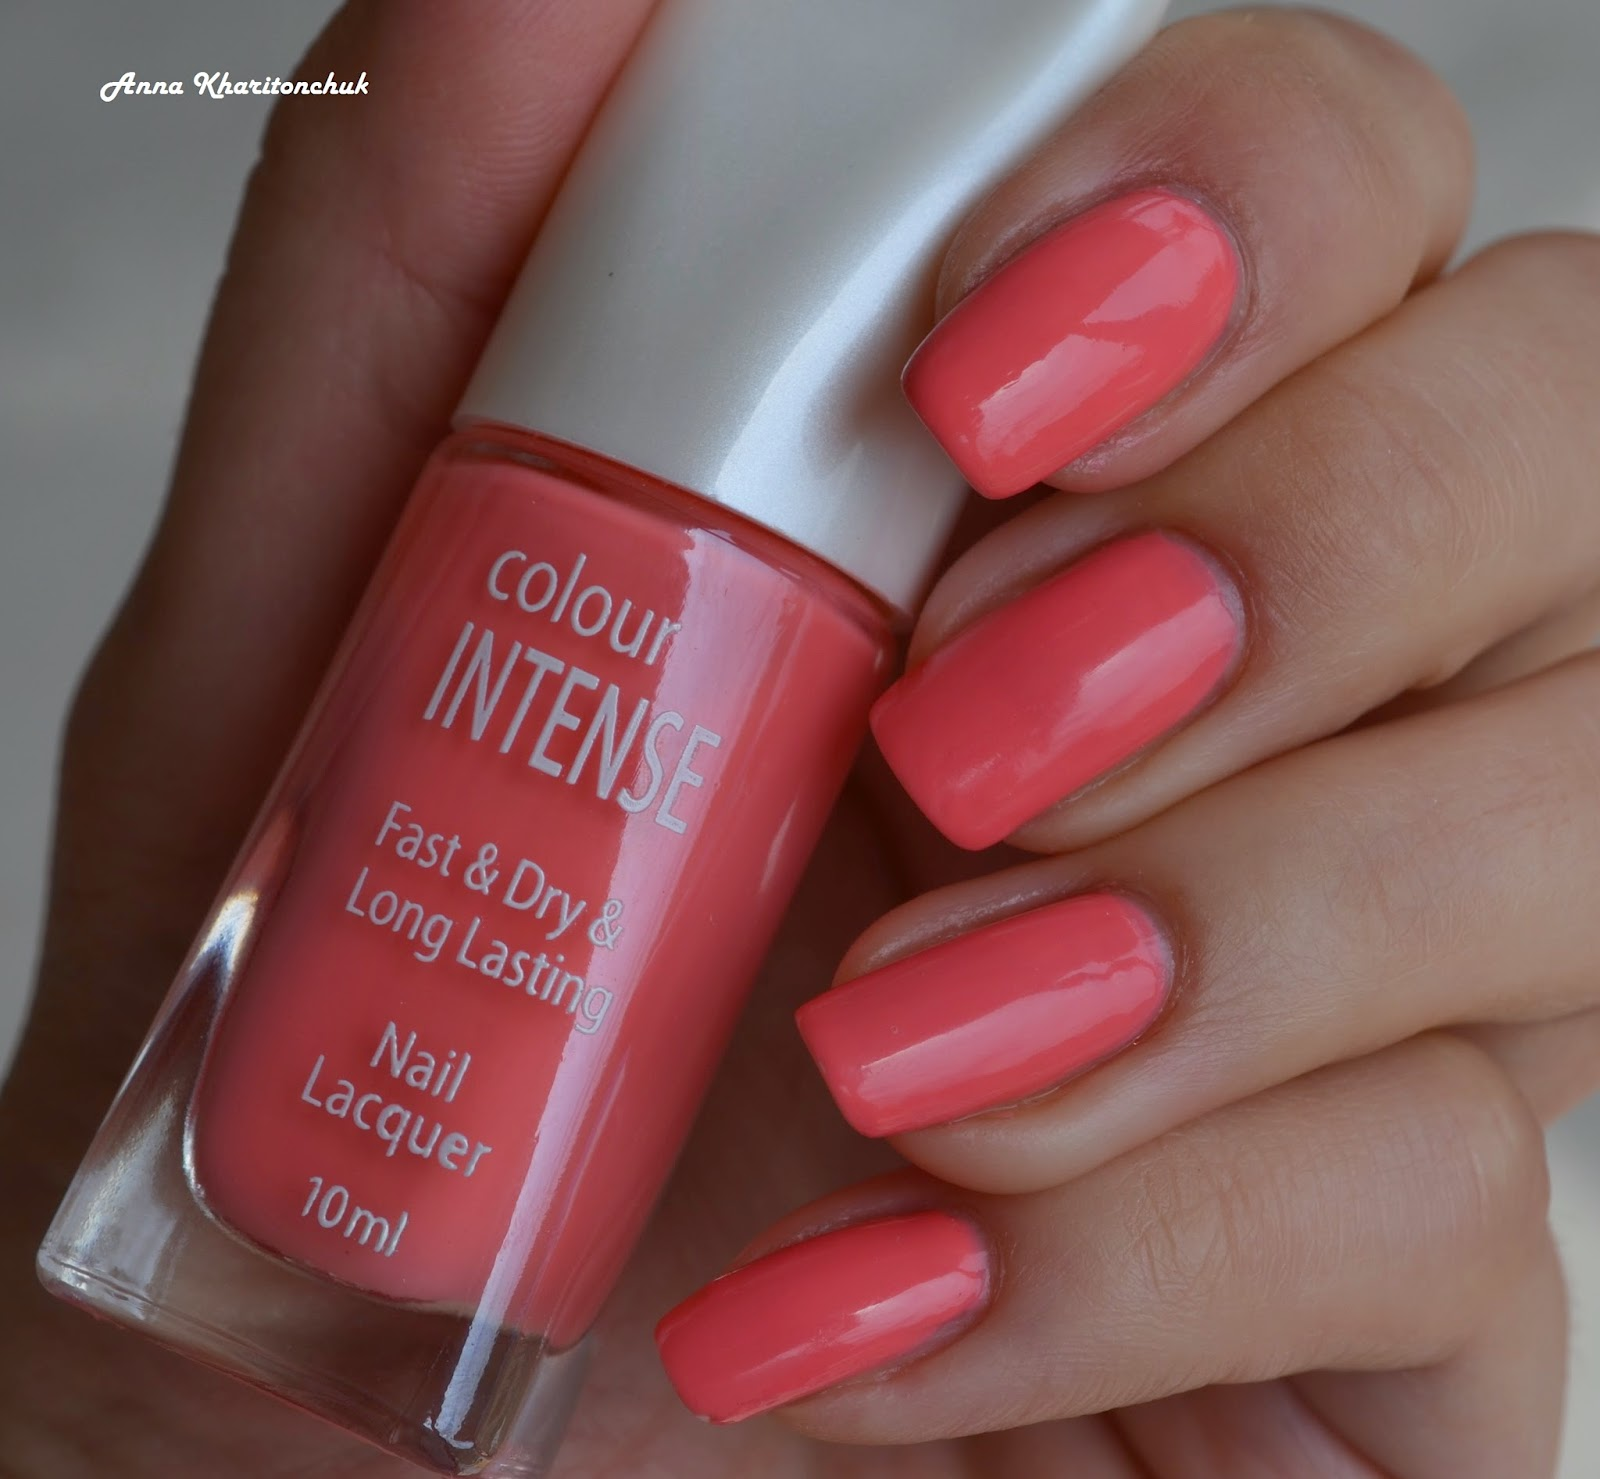 Colour Intense Fast&Dry&Long Lasting # 040